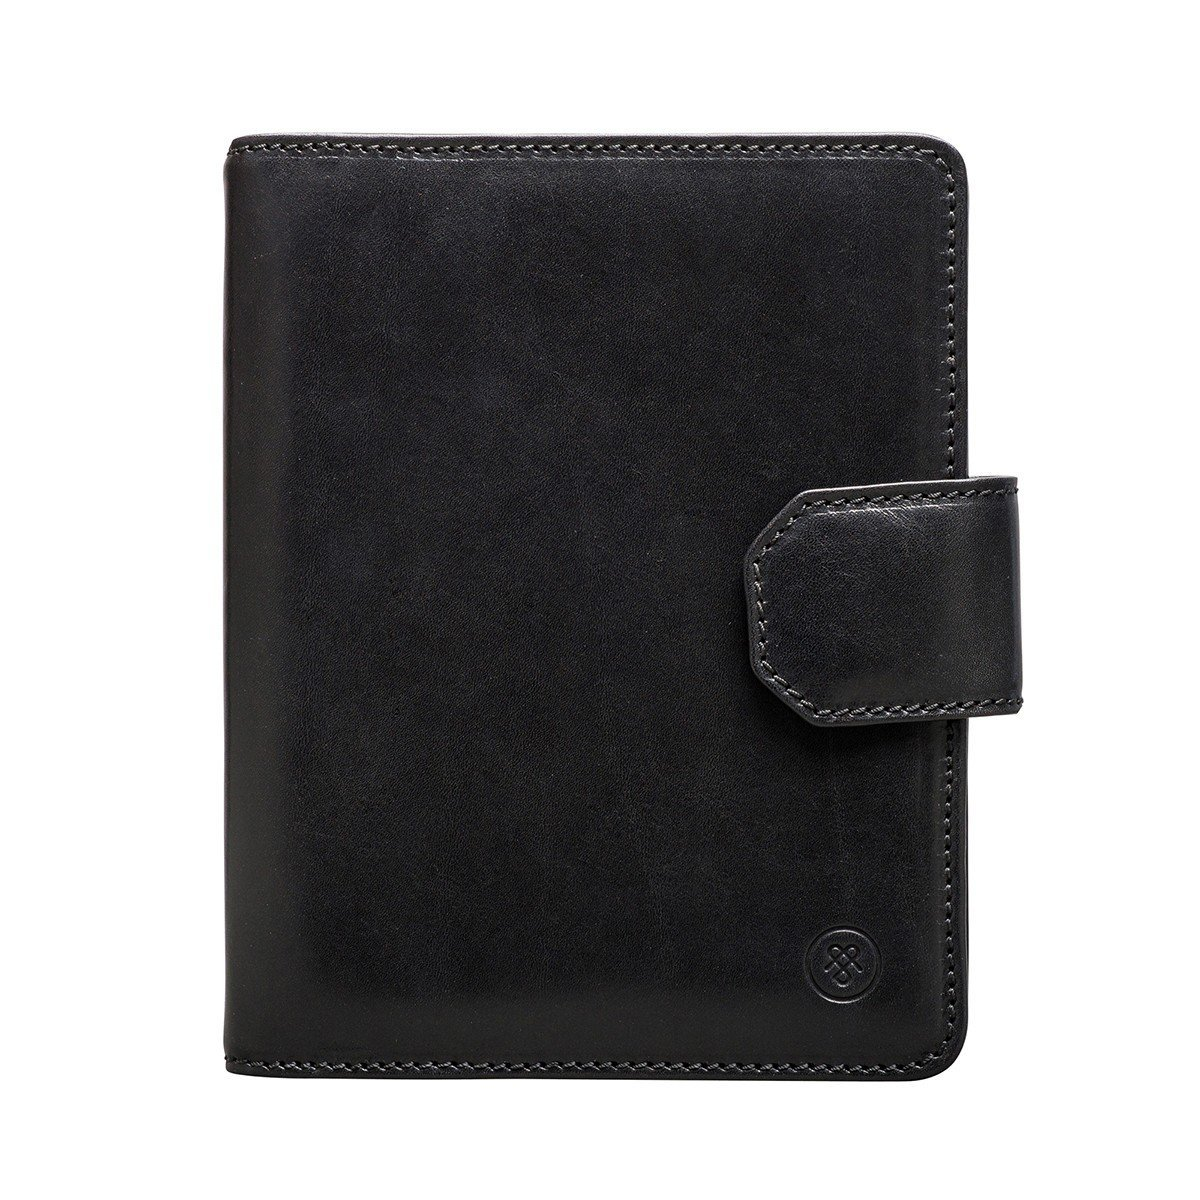 bf952472e79f Get Quotations · Maxwell Scott® Personalised A5 Black Leather Notebook  (Mozzano)